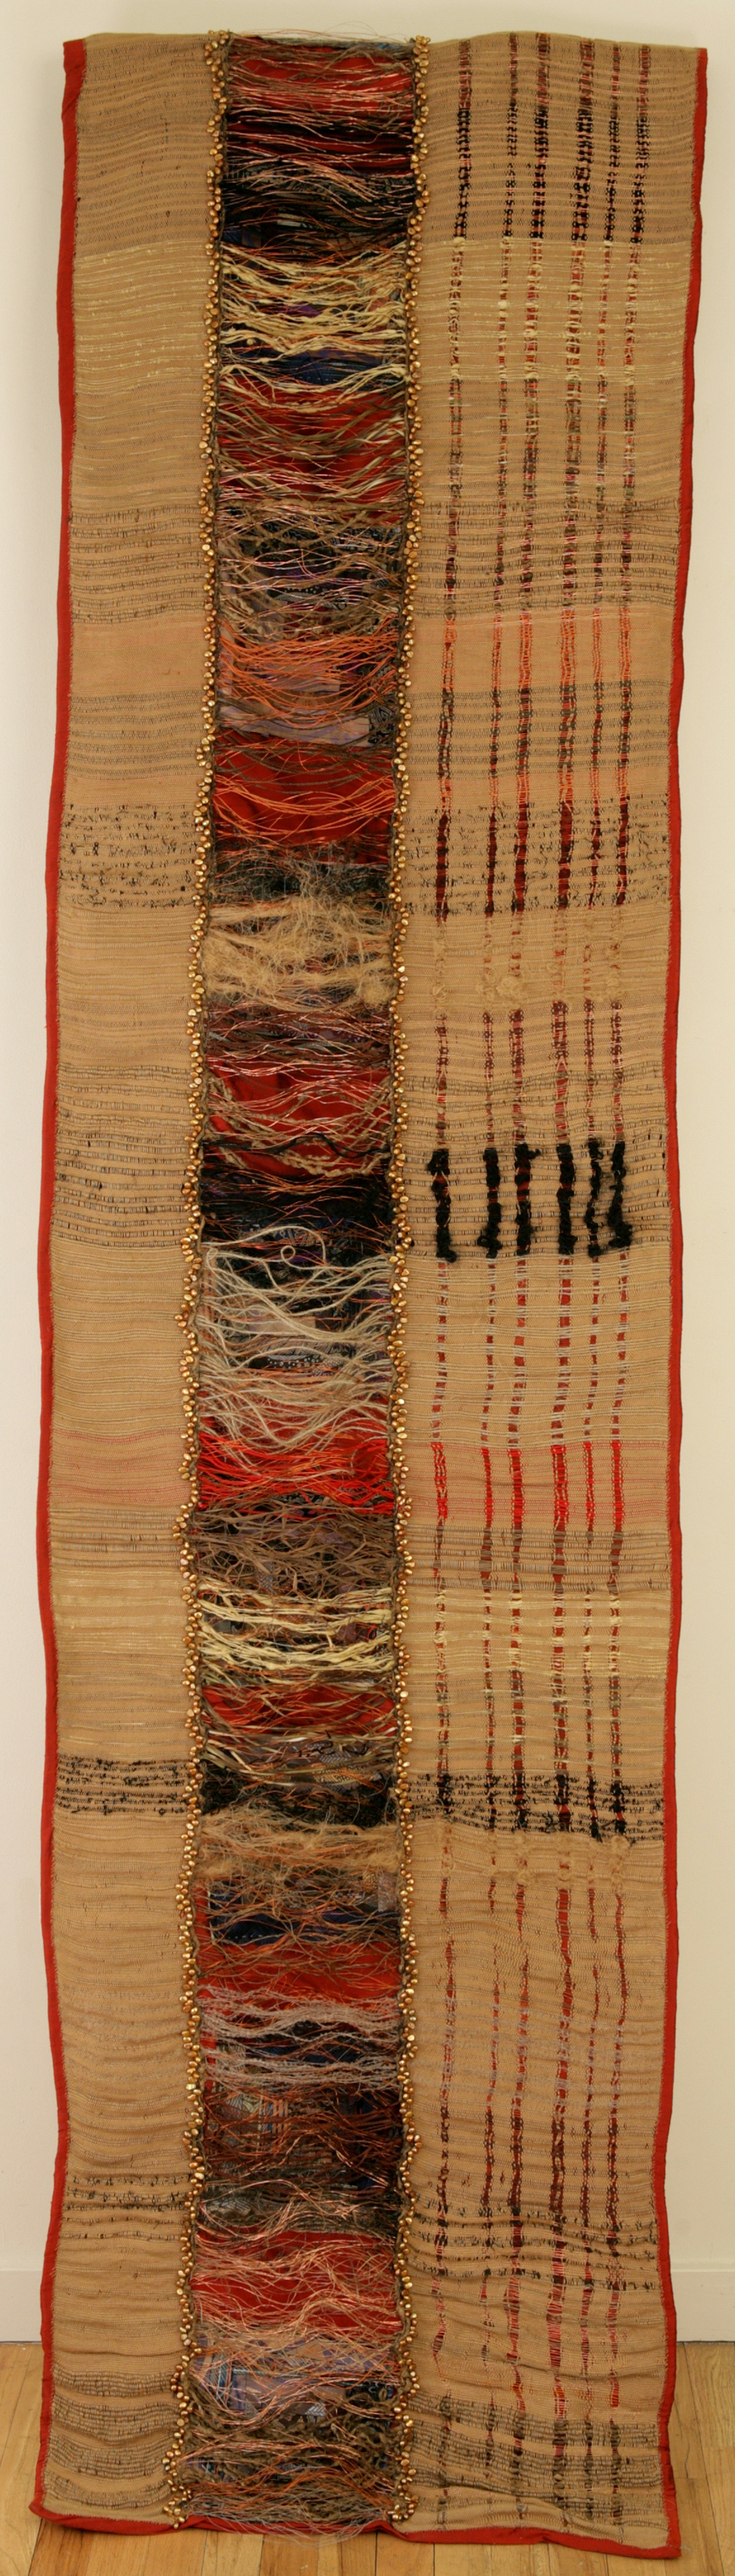 """Sphinx:"" Bamboo yarn, silk copper, fresh water pearls and organic fibre. Hand woven on floor loom. 2007."